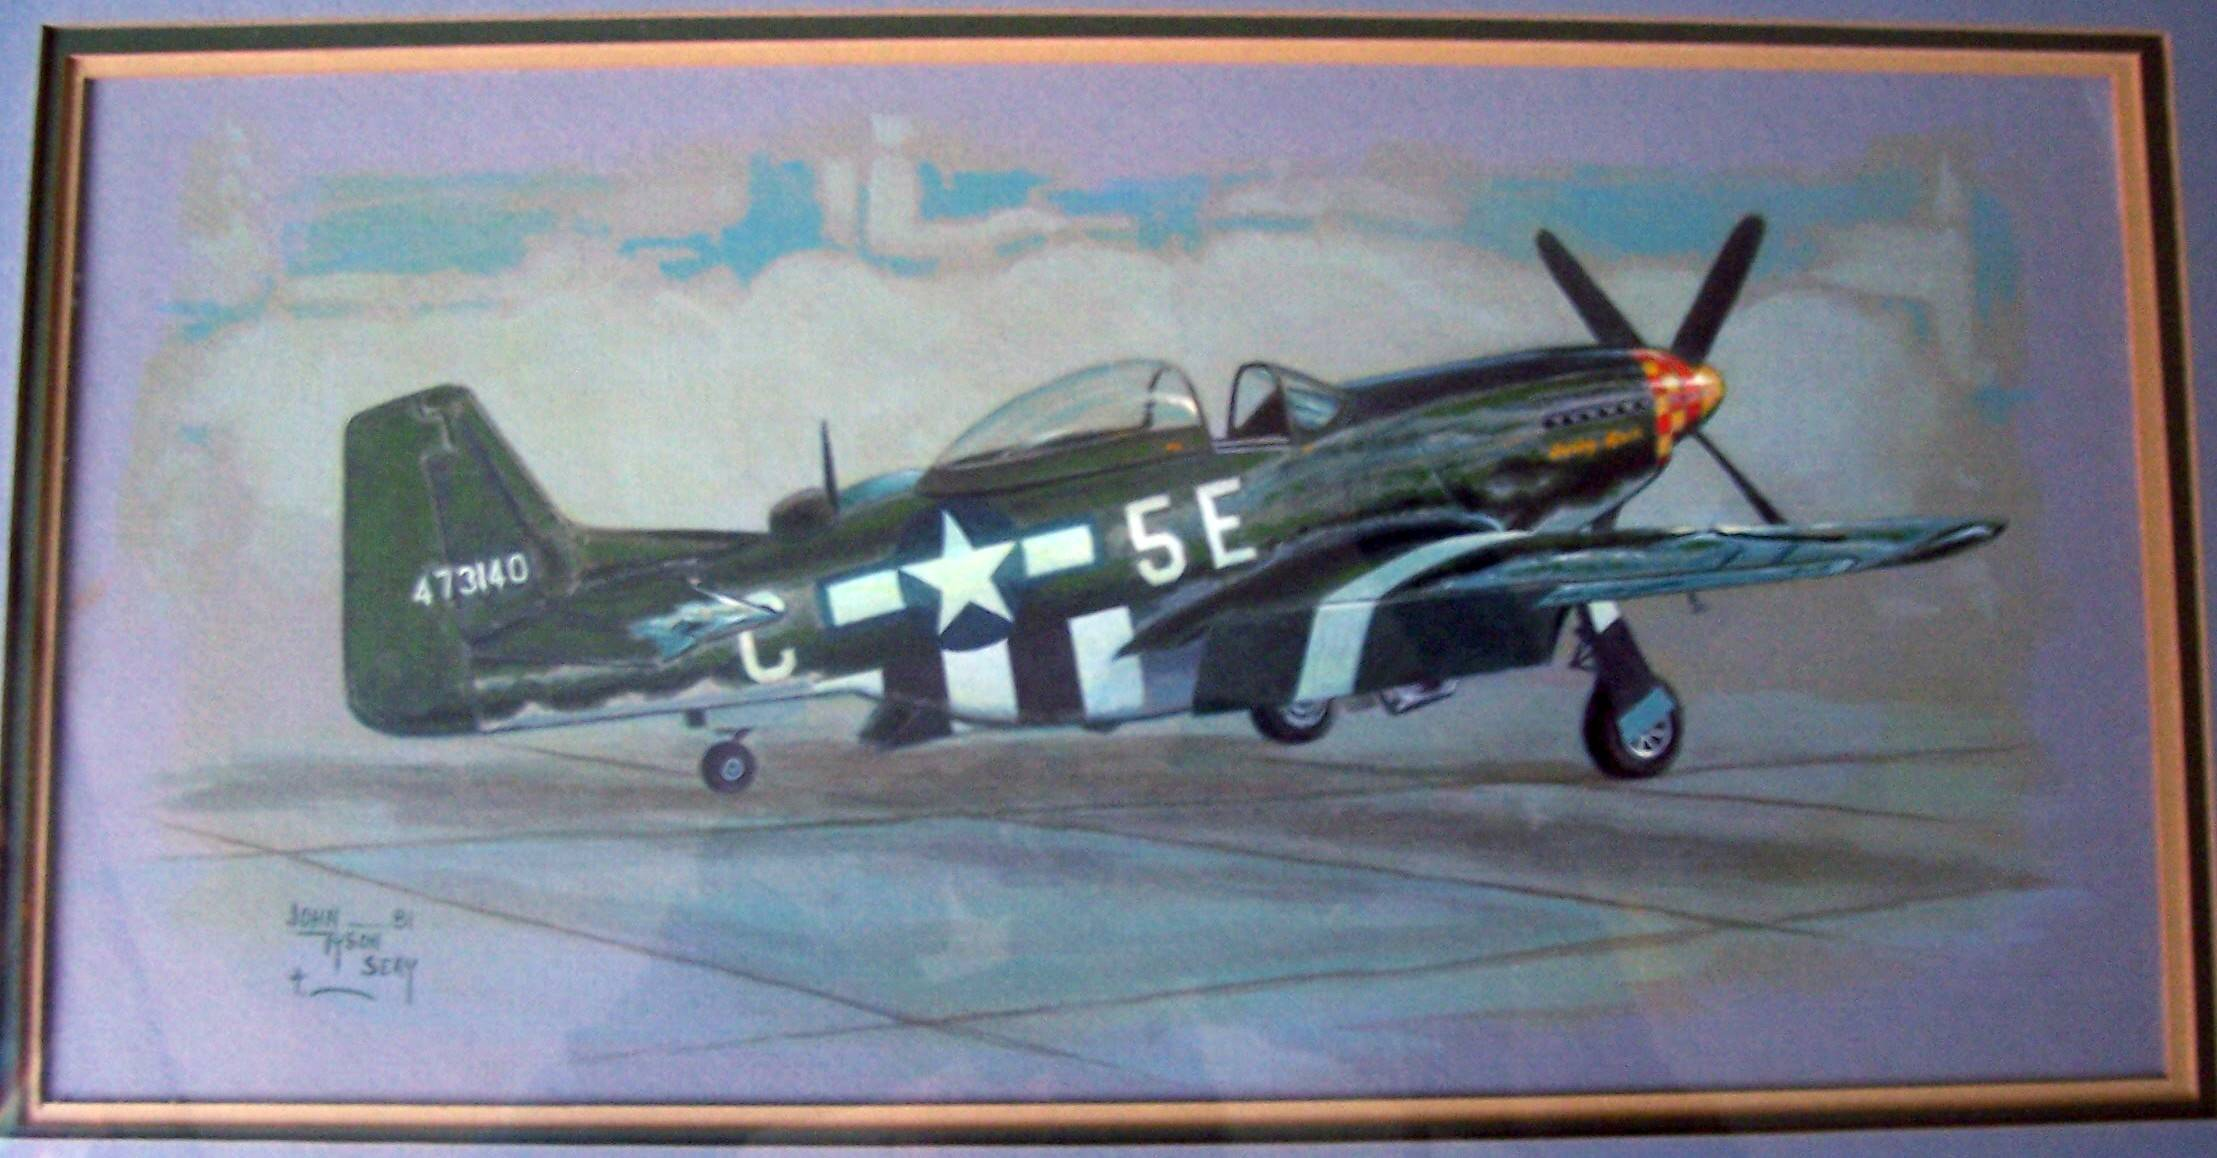 P-51D Mustang, a plane I'd love to fly. I did this just to show I could paint airplaine's.